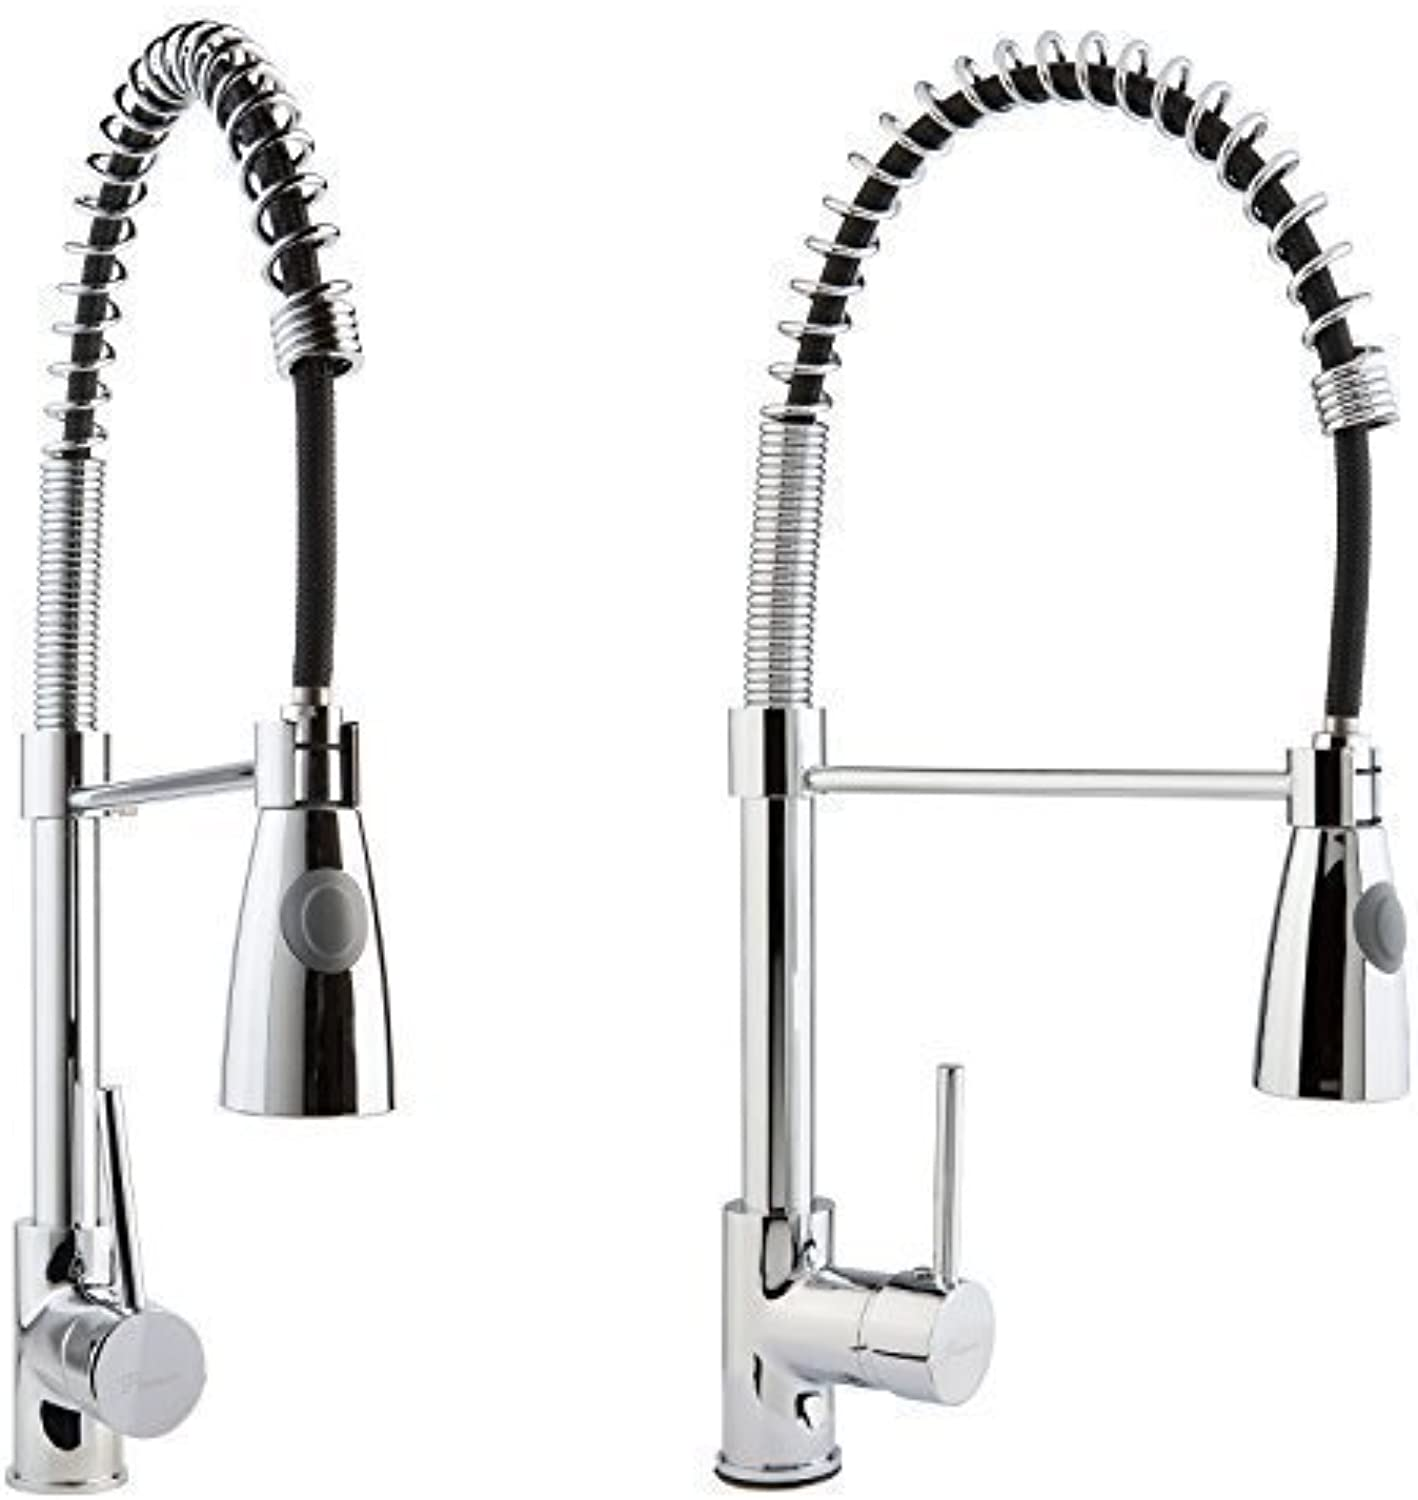 XXL Low Pressure Tap Fitting with Shower Kitchen Sink Tap extendable single-lever tap shower tap Hebelmischer